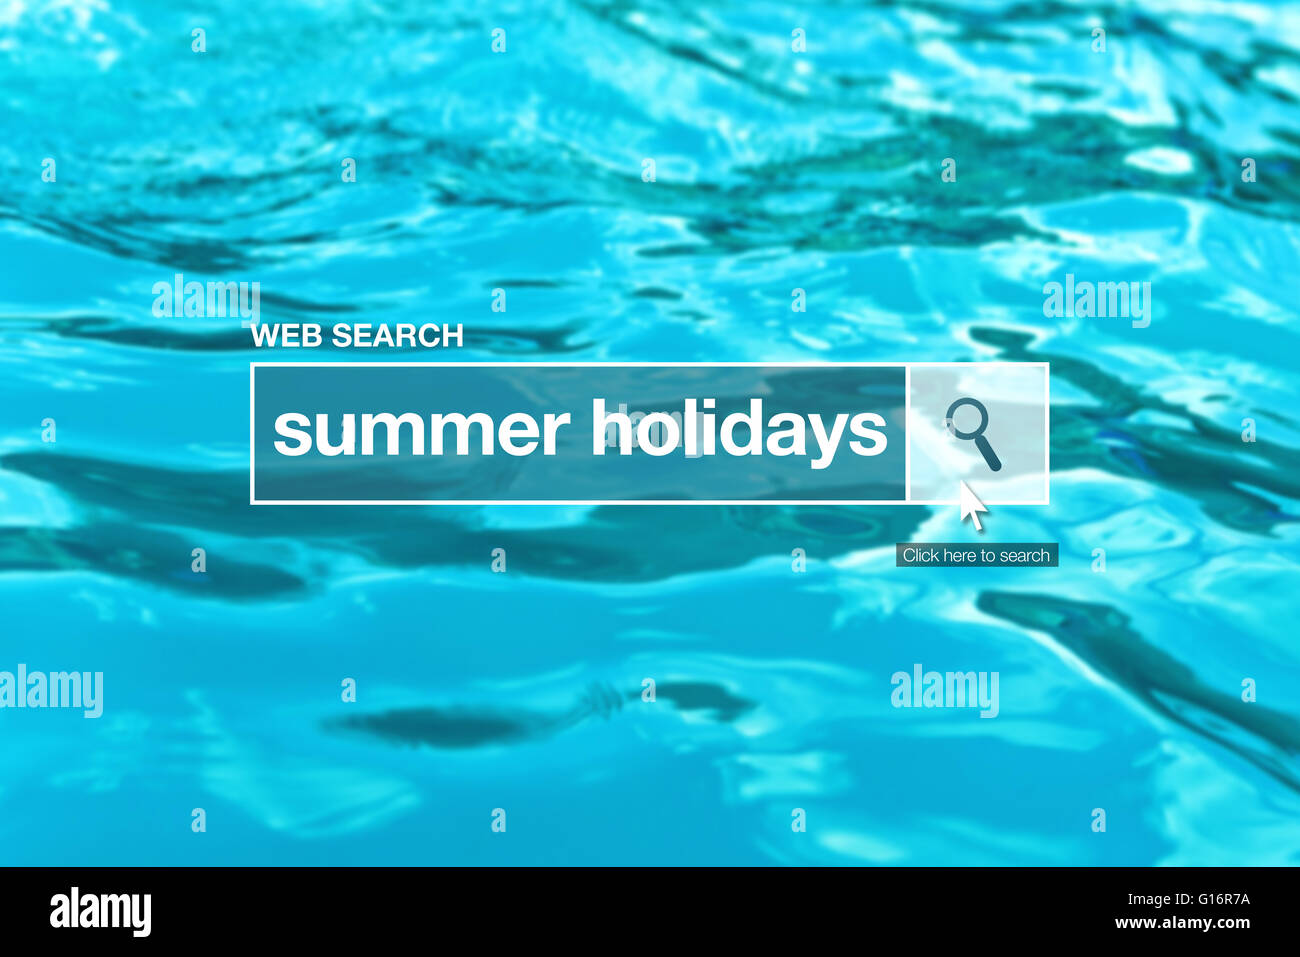 Summer holidays - web search bar glossary term on internet - Stock Image